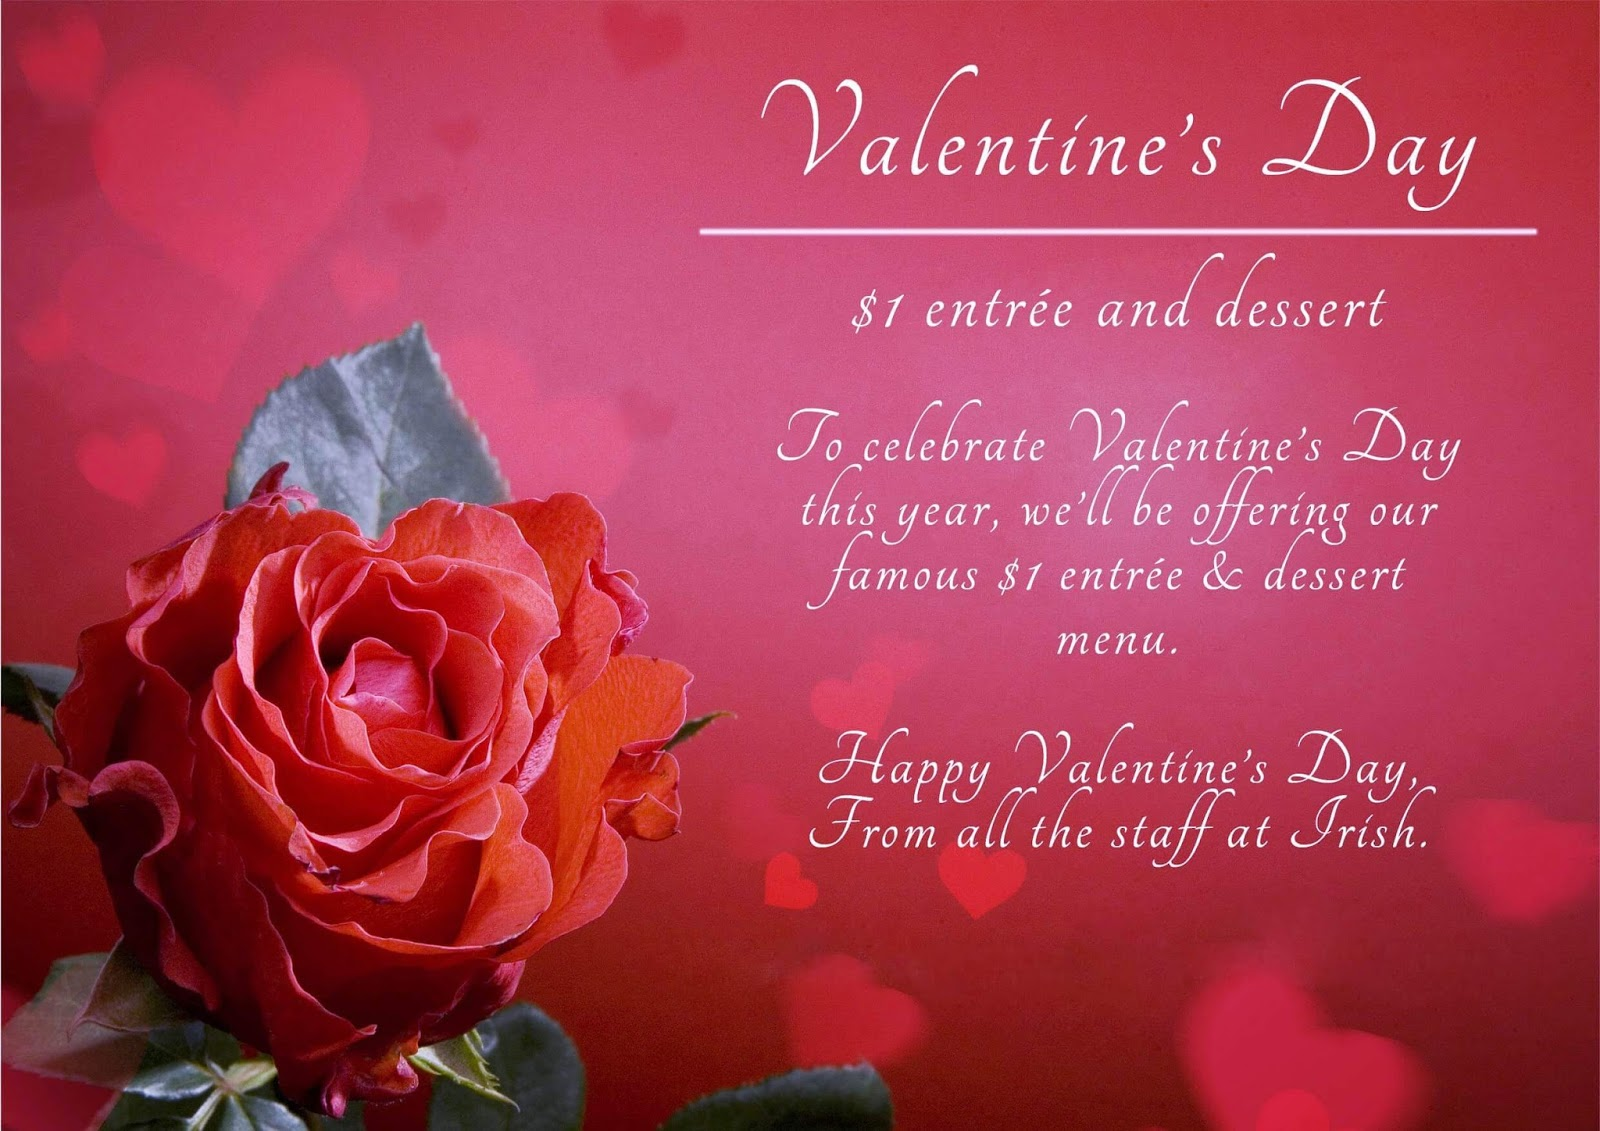 valentine's day images free